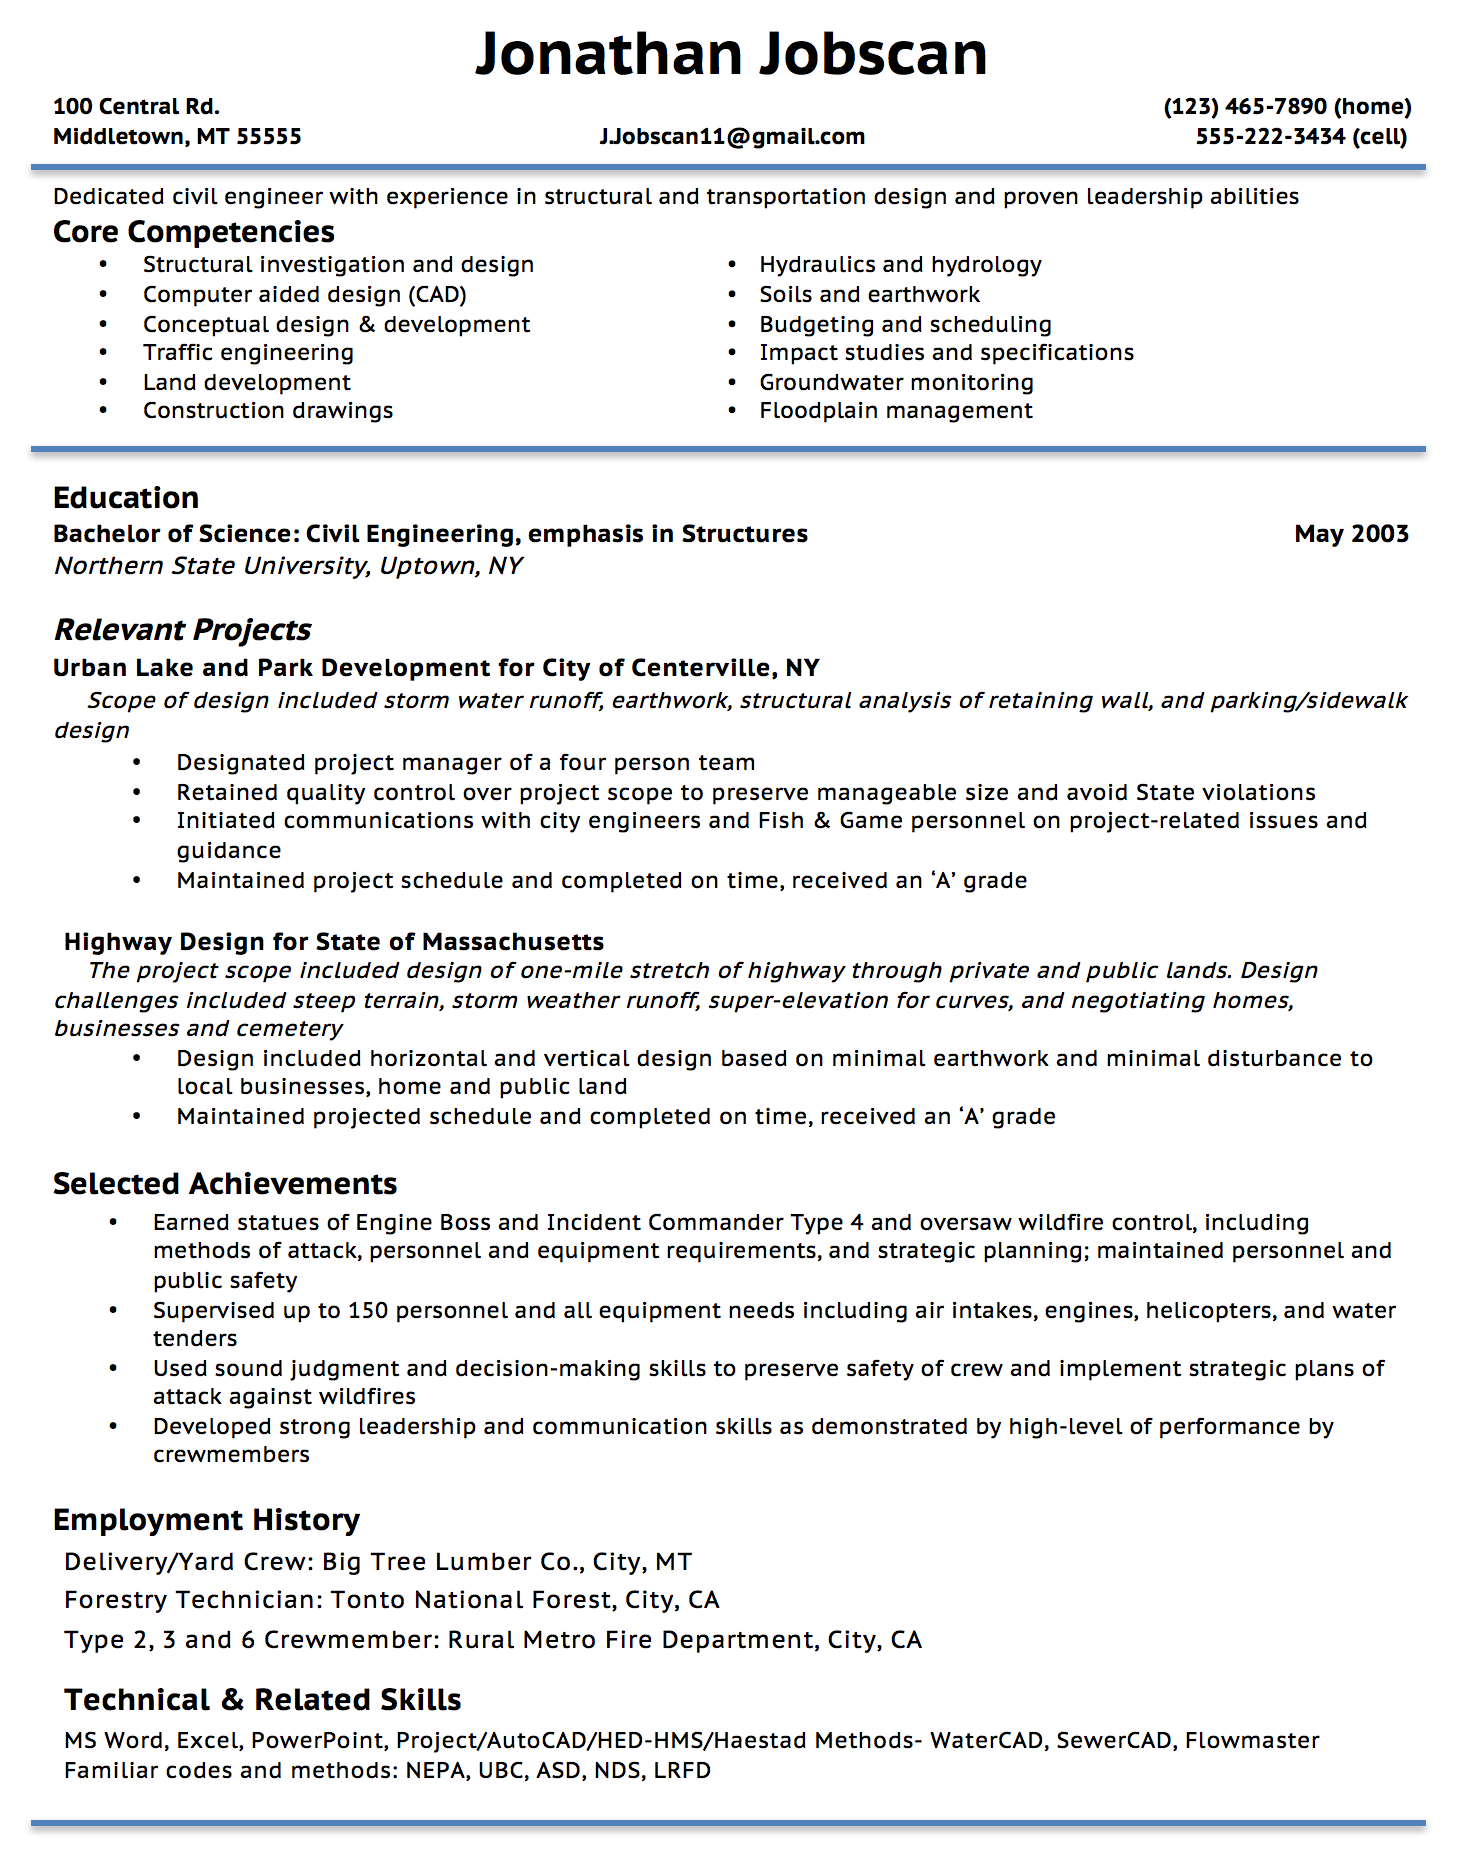 Opposenewapstandardsus  Pretty Resume Writing Guide  Jobscan With Exciting Example Of A Functional Resume Format With Lovely Pta Resume Also Gpa Resume In Addition Sample Resumes For Customer Service And Resume Suggestions As Well As Professional Resume Writers Cost Additionally Best Buy Resume From Jobscanco With Opposenewapstandardsus  Exciting Resume Writing Guide  Jobscan With Lovely Example Of A Functional Resume Format And Pretty Pta Resume Also Gpa Resume In Addition Sample Resumes For Customer Service From Jobscanco